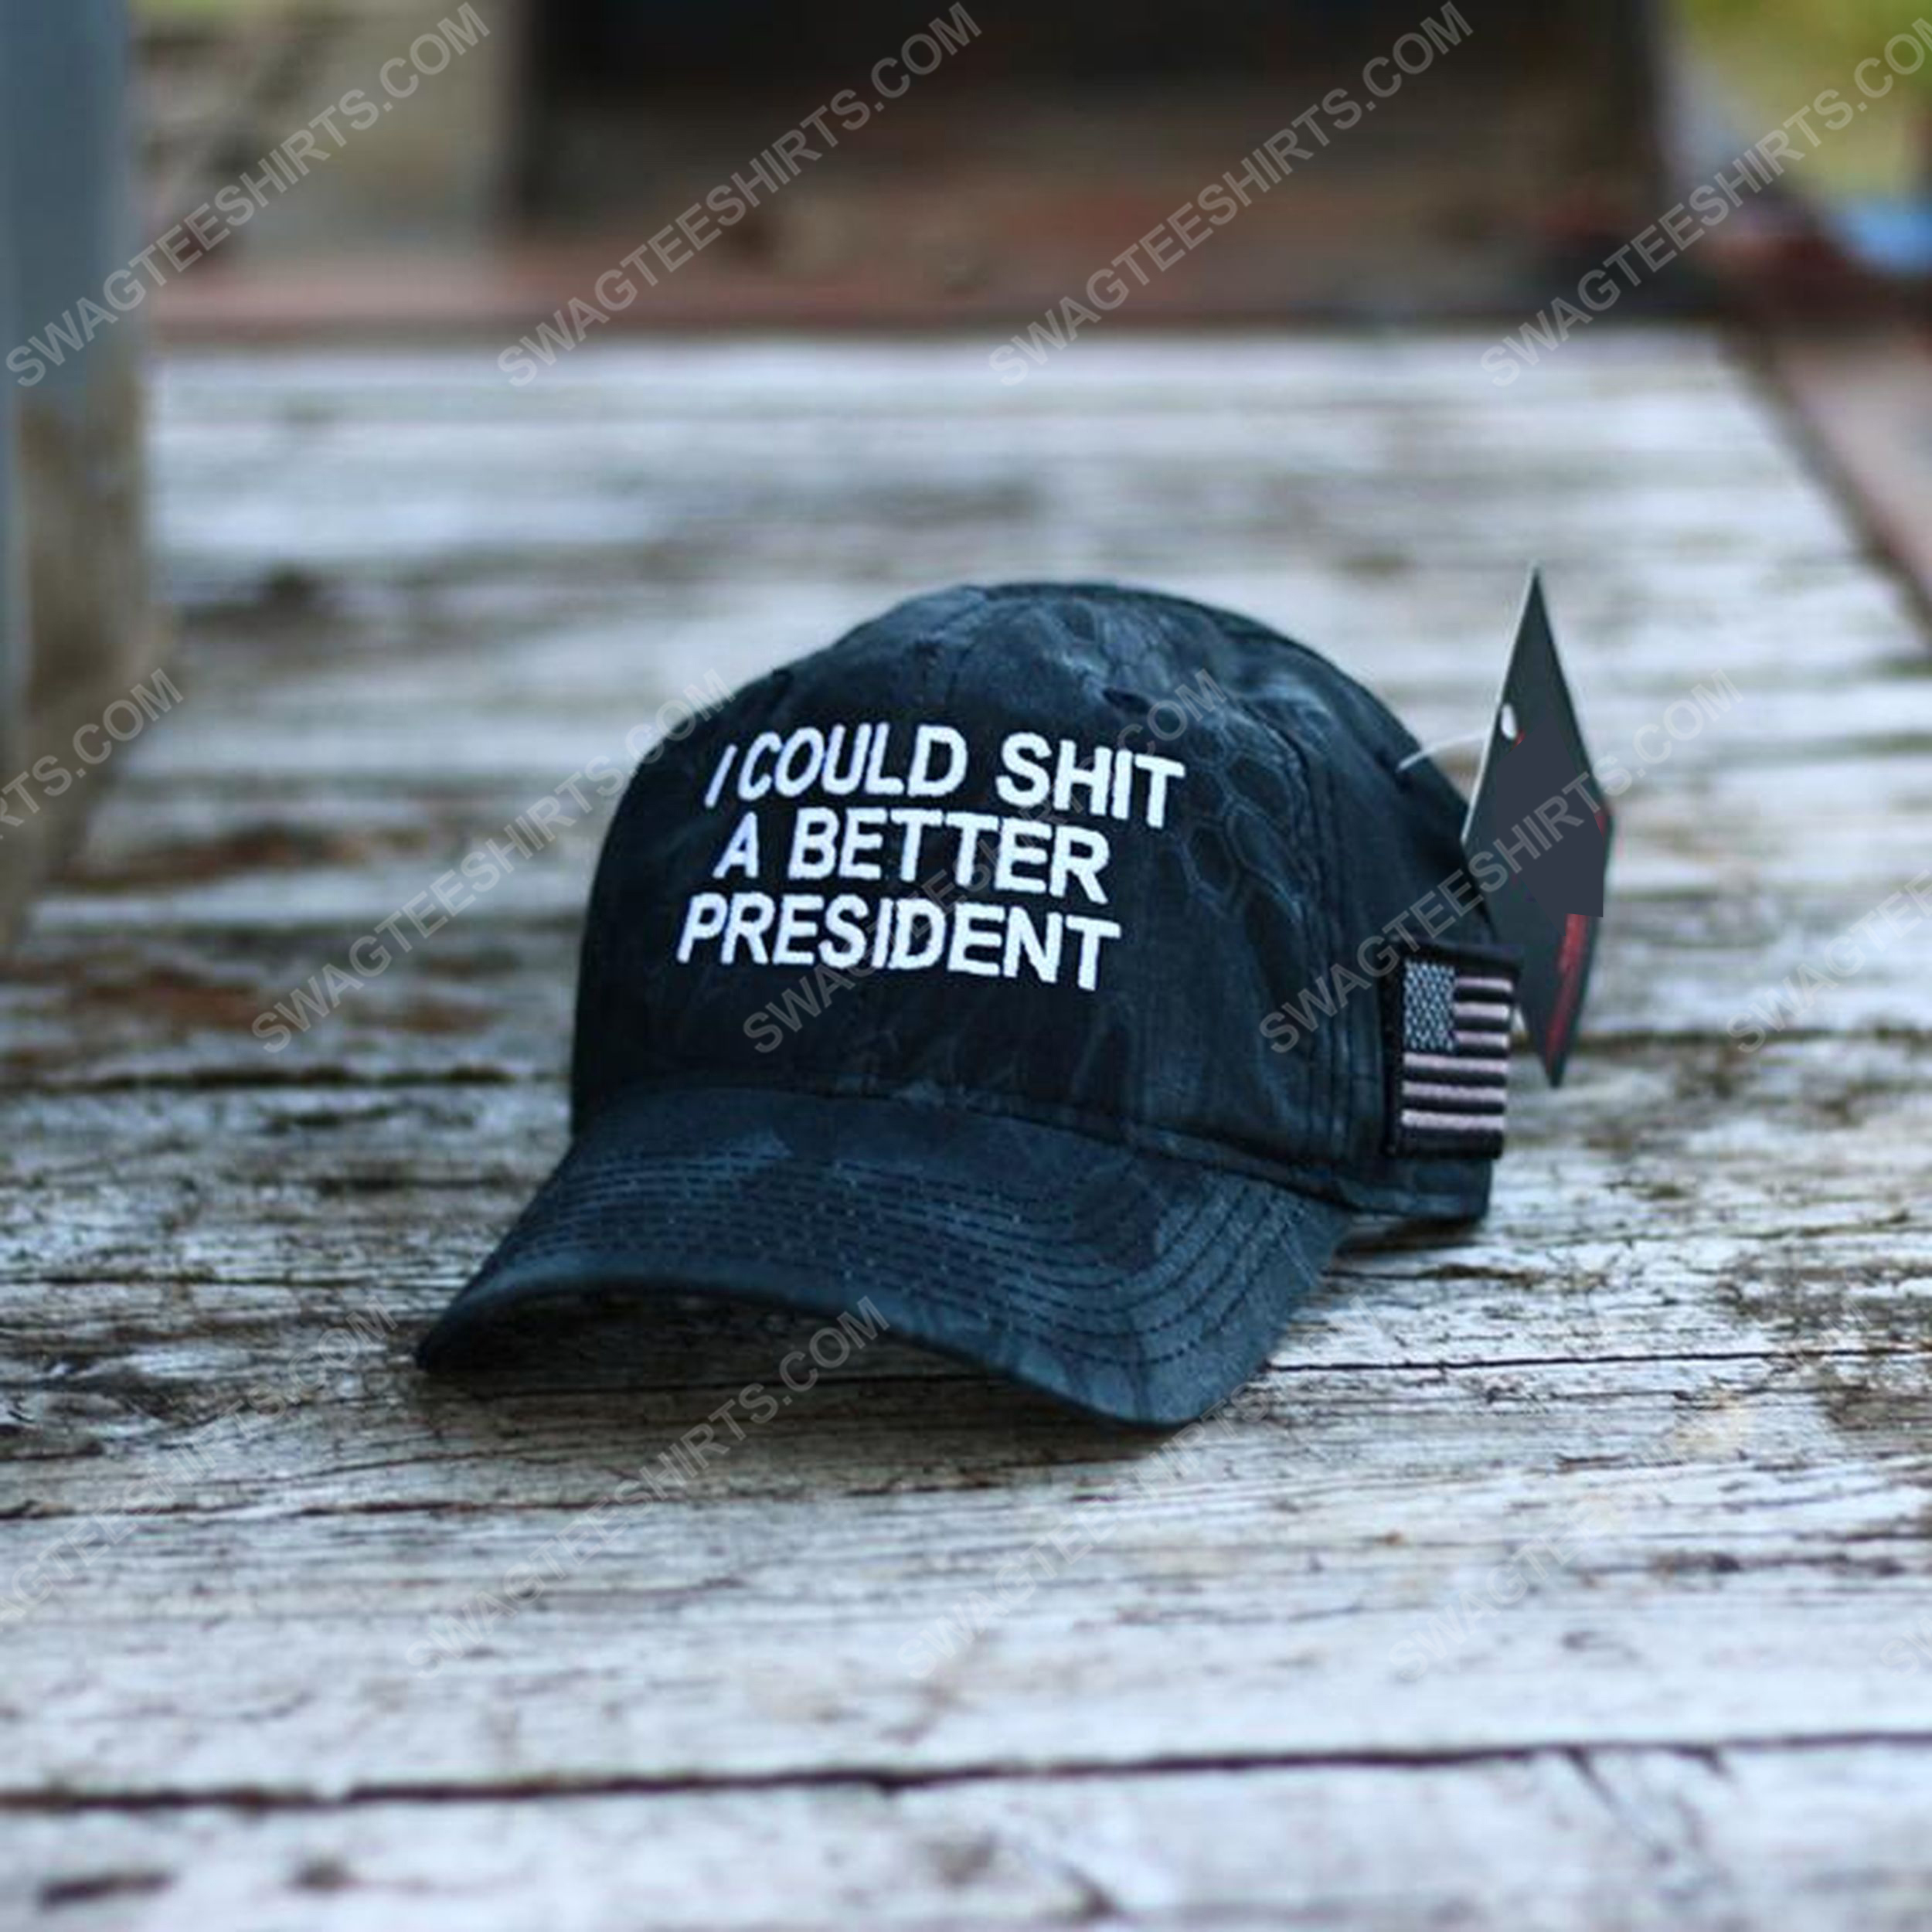 I could shit a better president full print classic hat 1